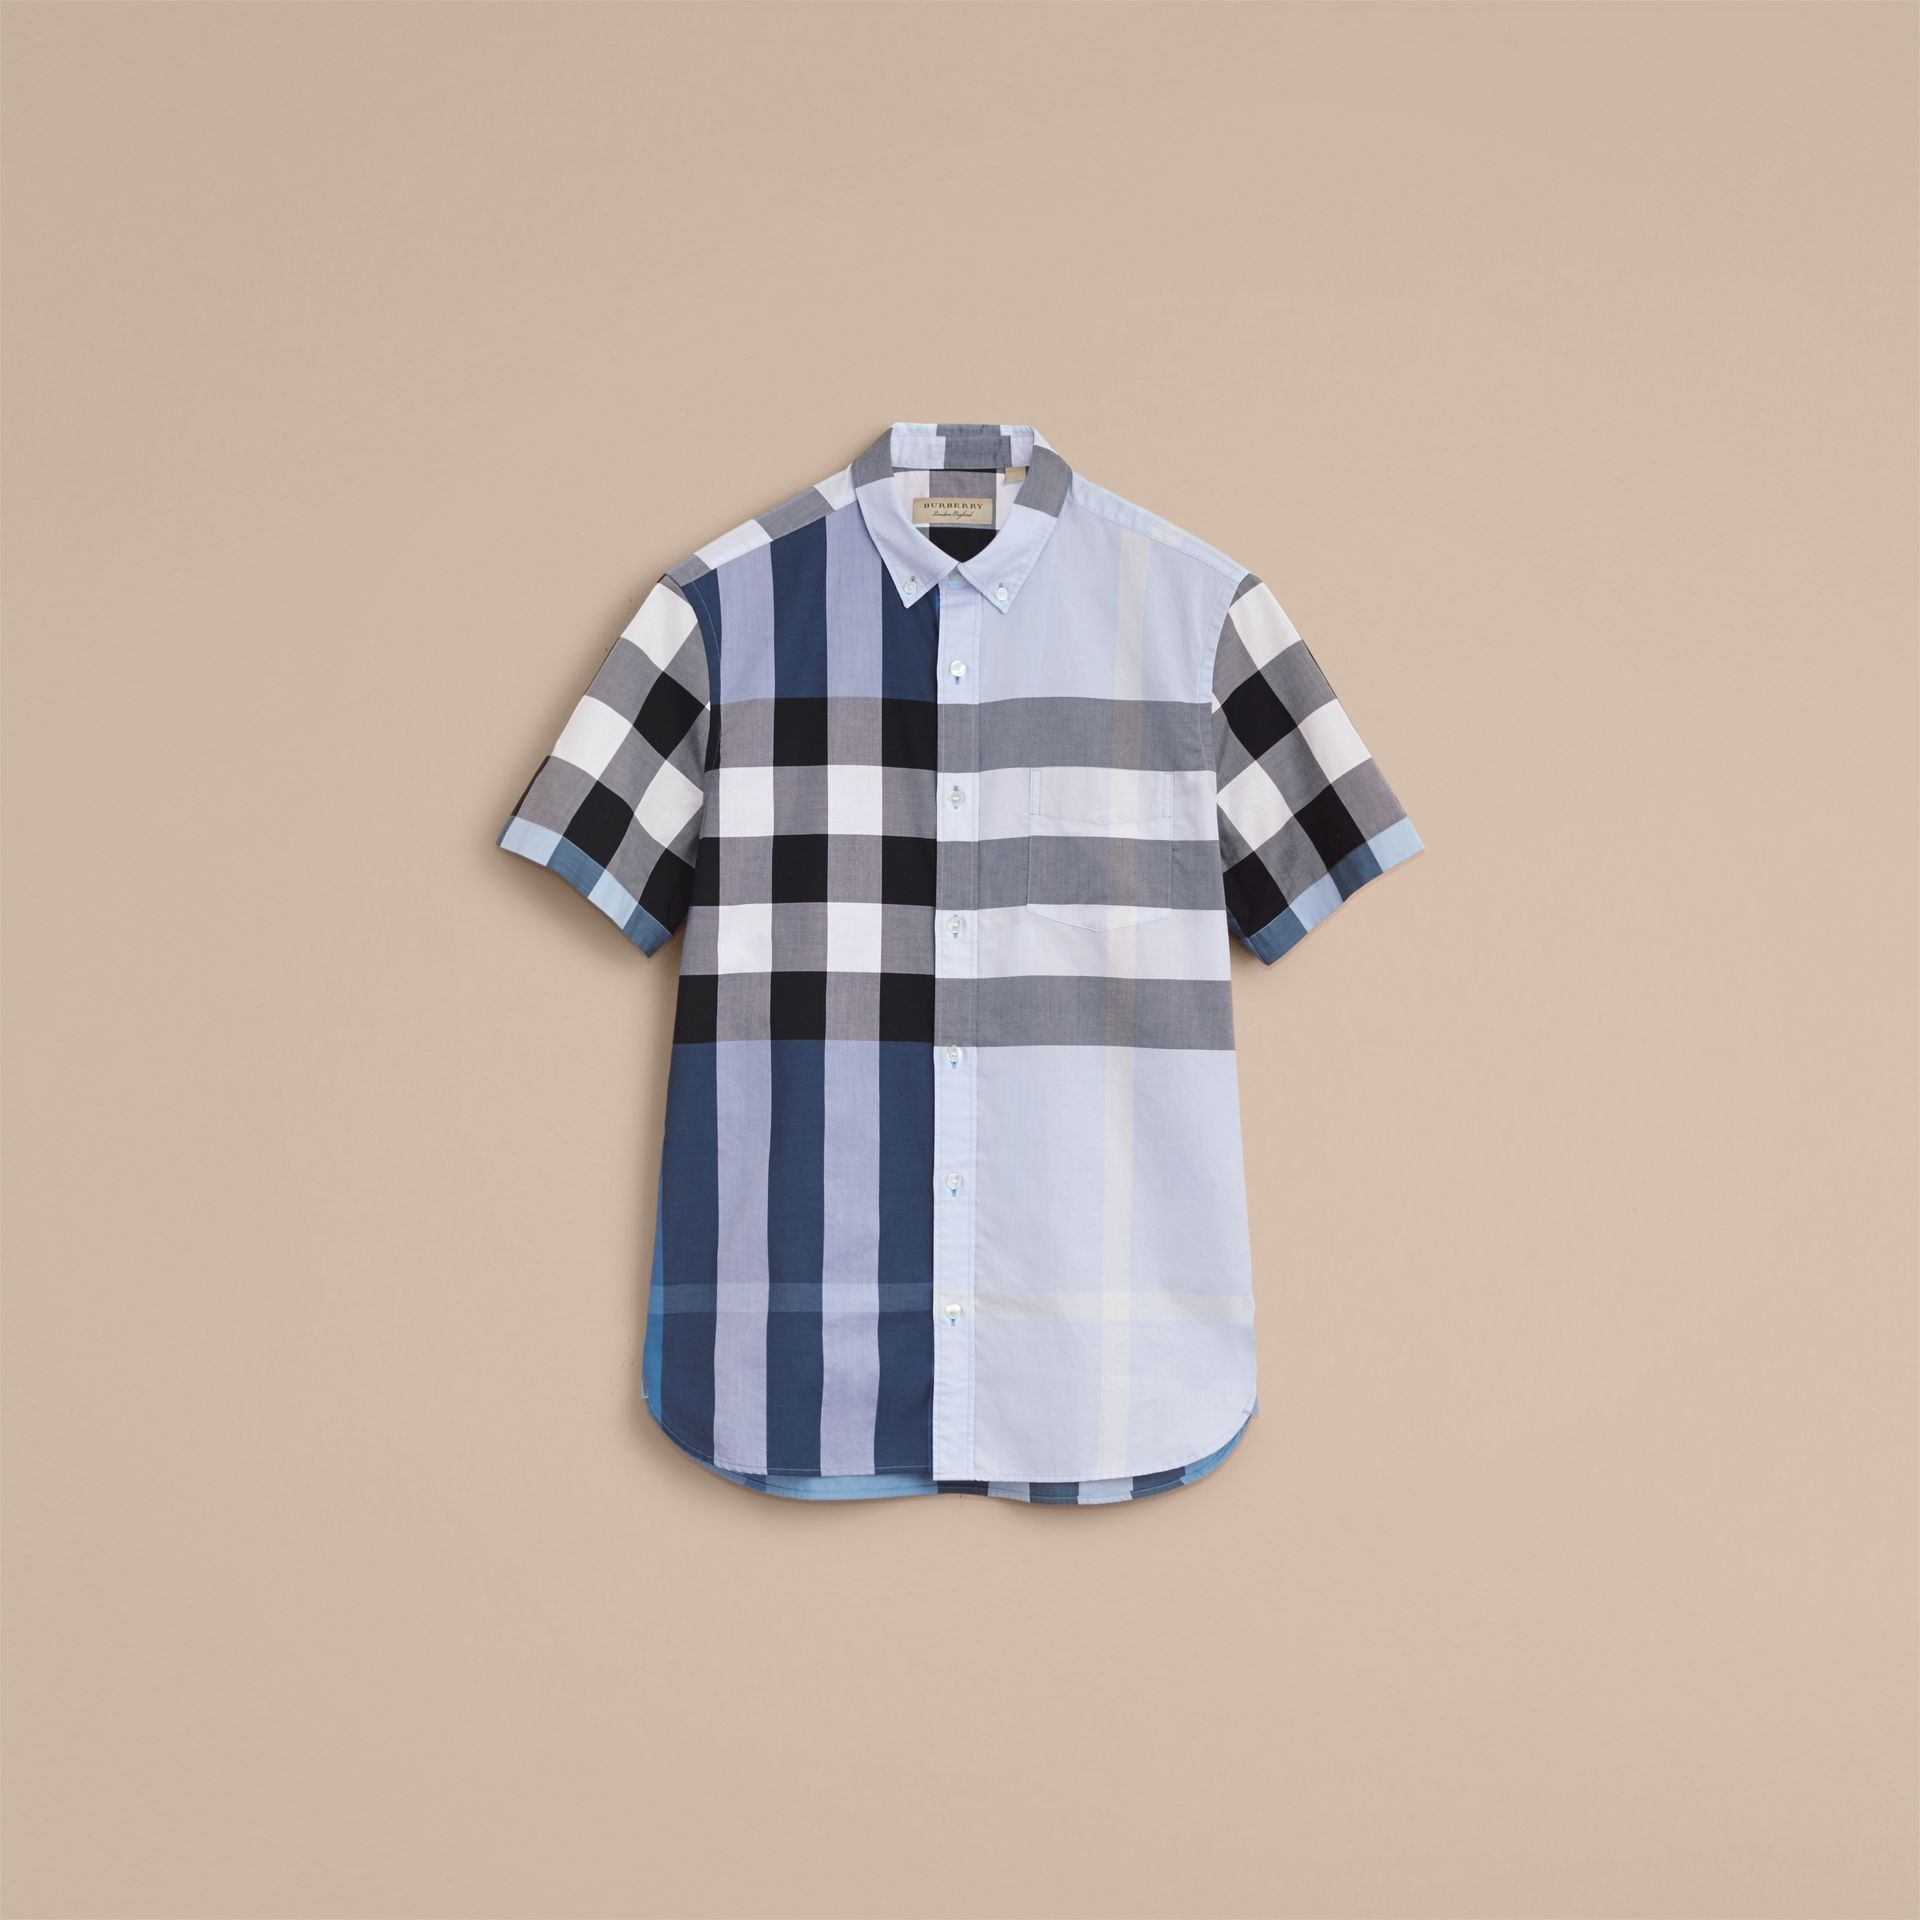 Button-down Collar Short-sleeve Check Cotton Shirt in Lupin Blue - Men | Burberry Singapore - gallery image 4